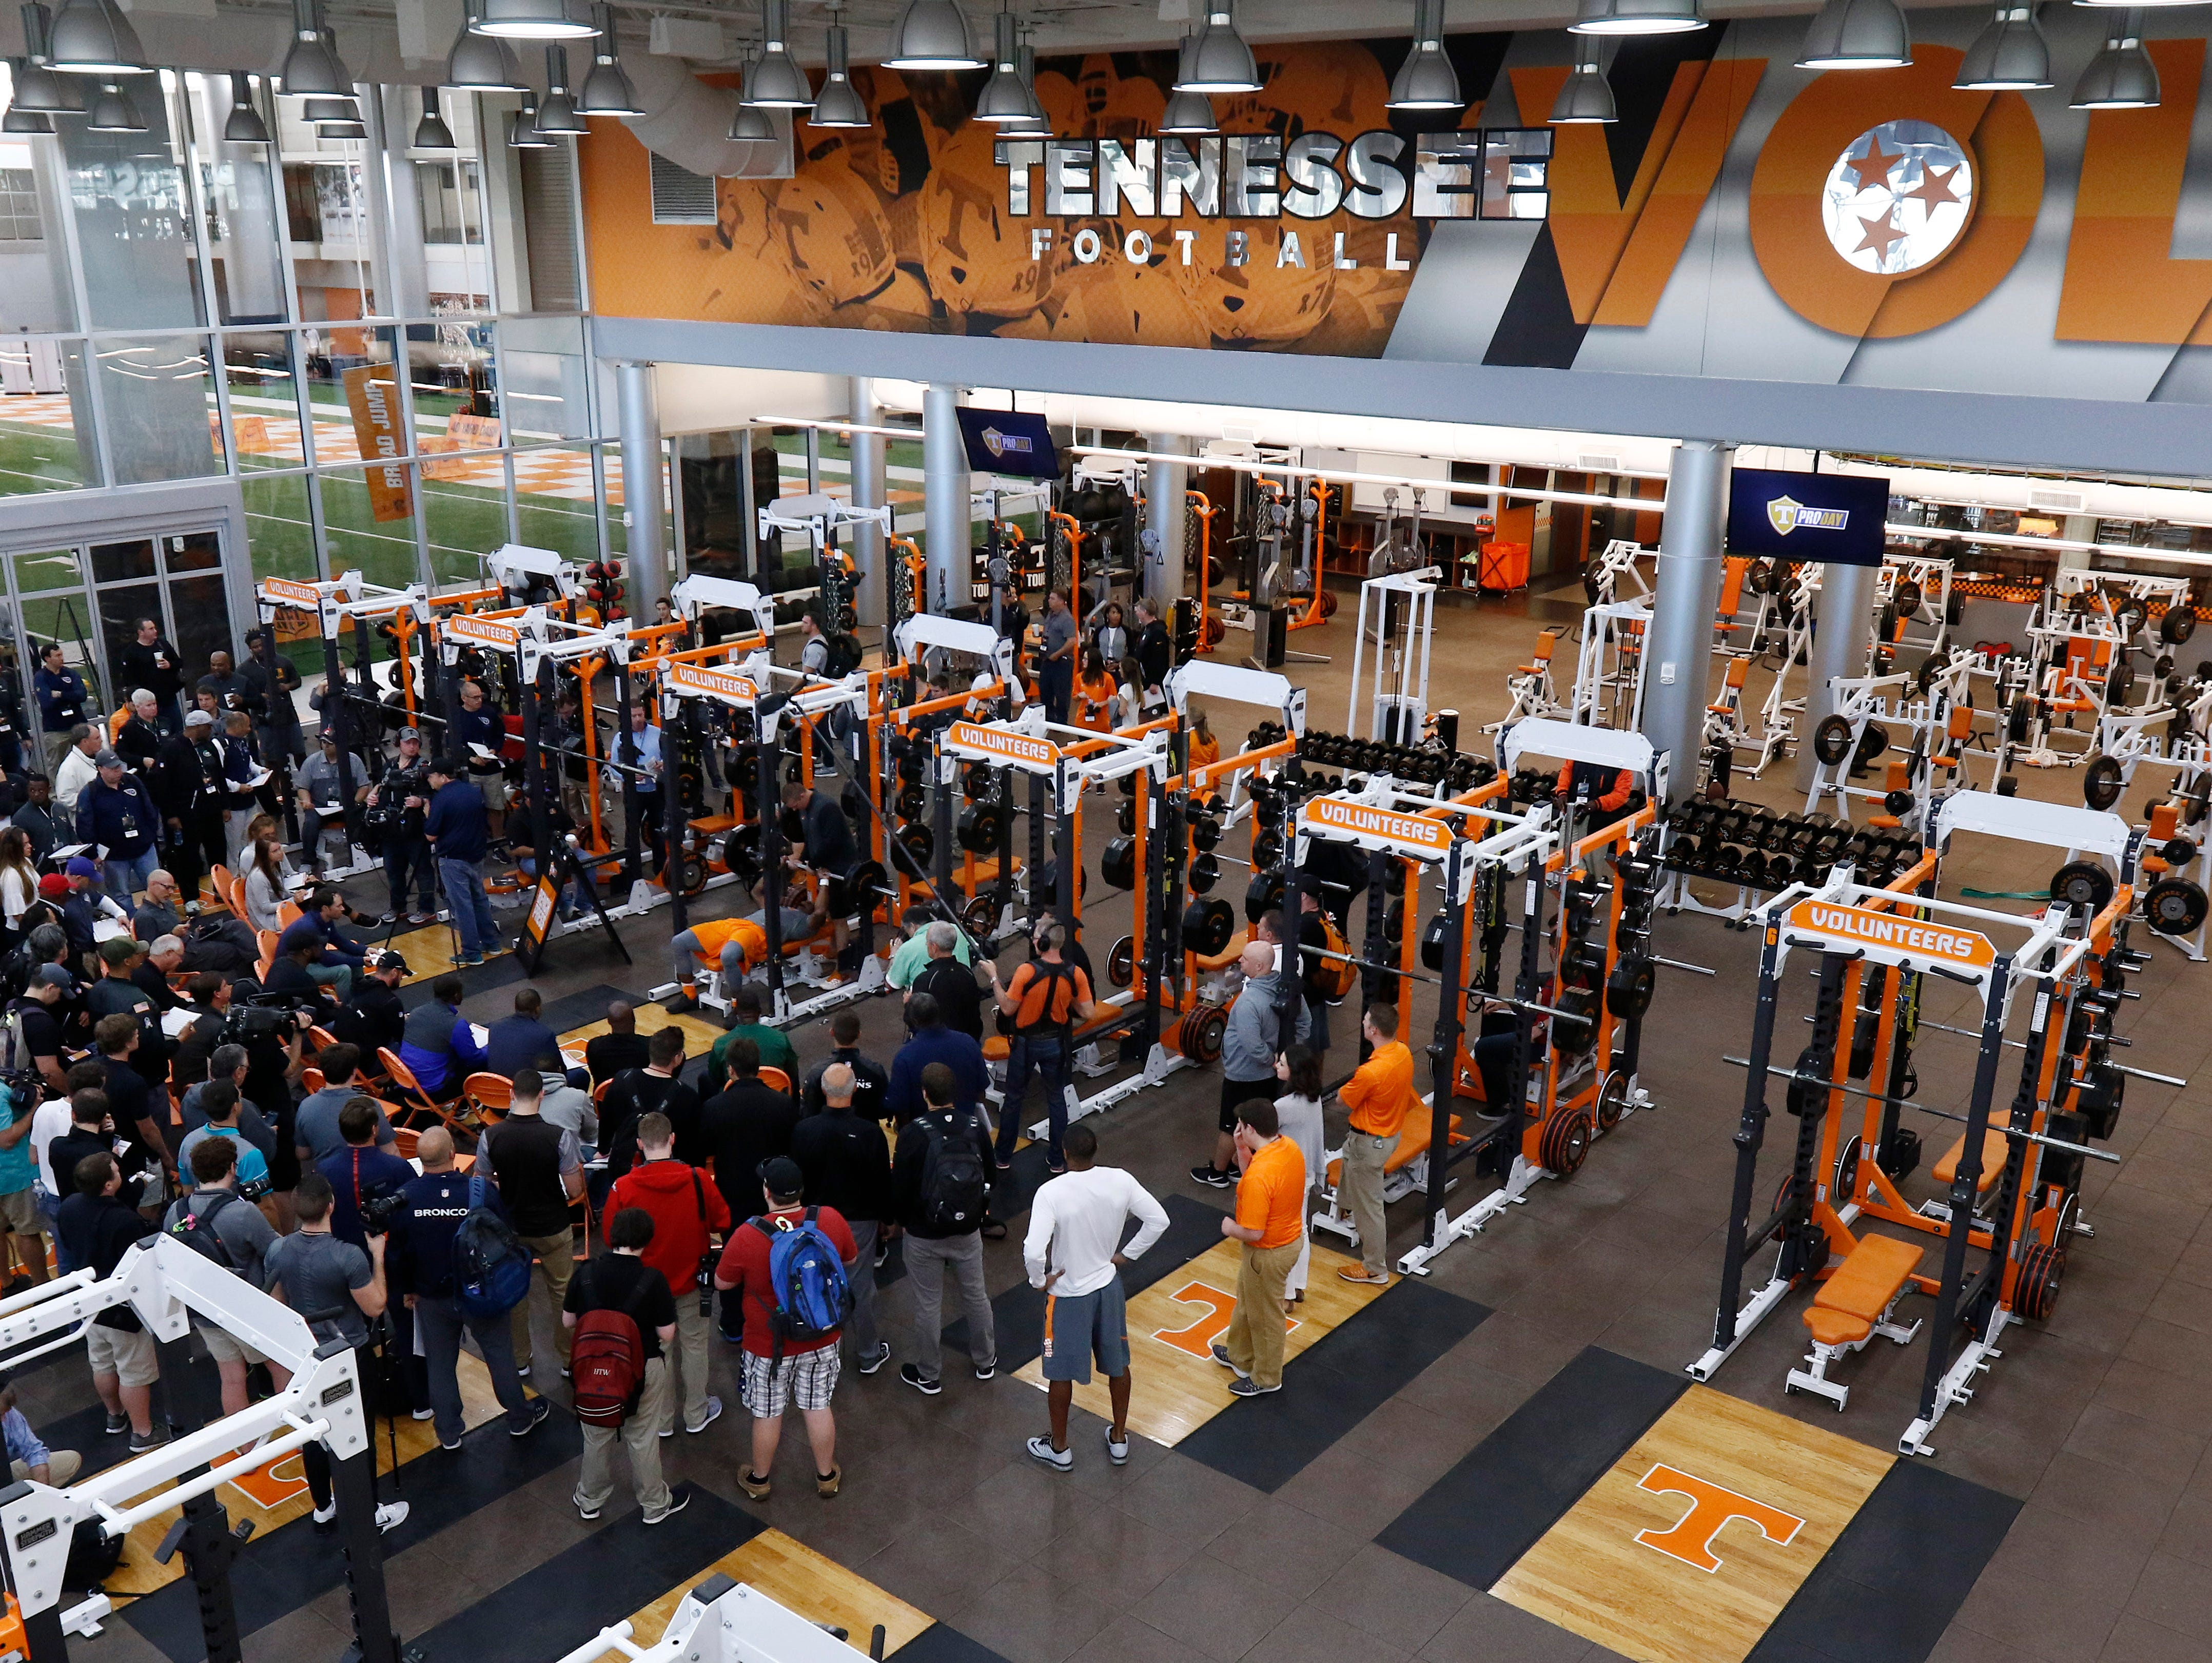 NFL scouts and media watch as a player bench presses during the NFL Pro Day at UT Friday, March 31, 2017 in Knoxville, Tenn.